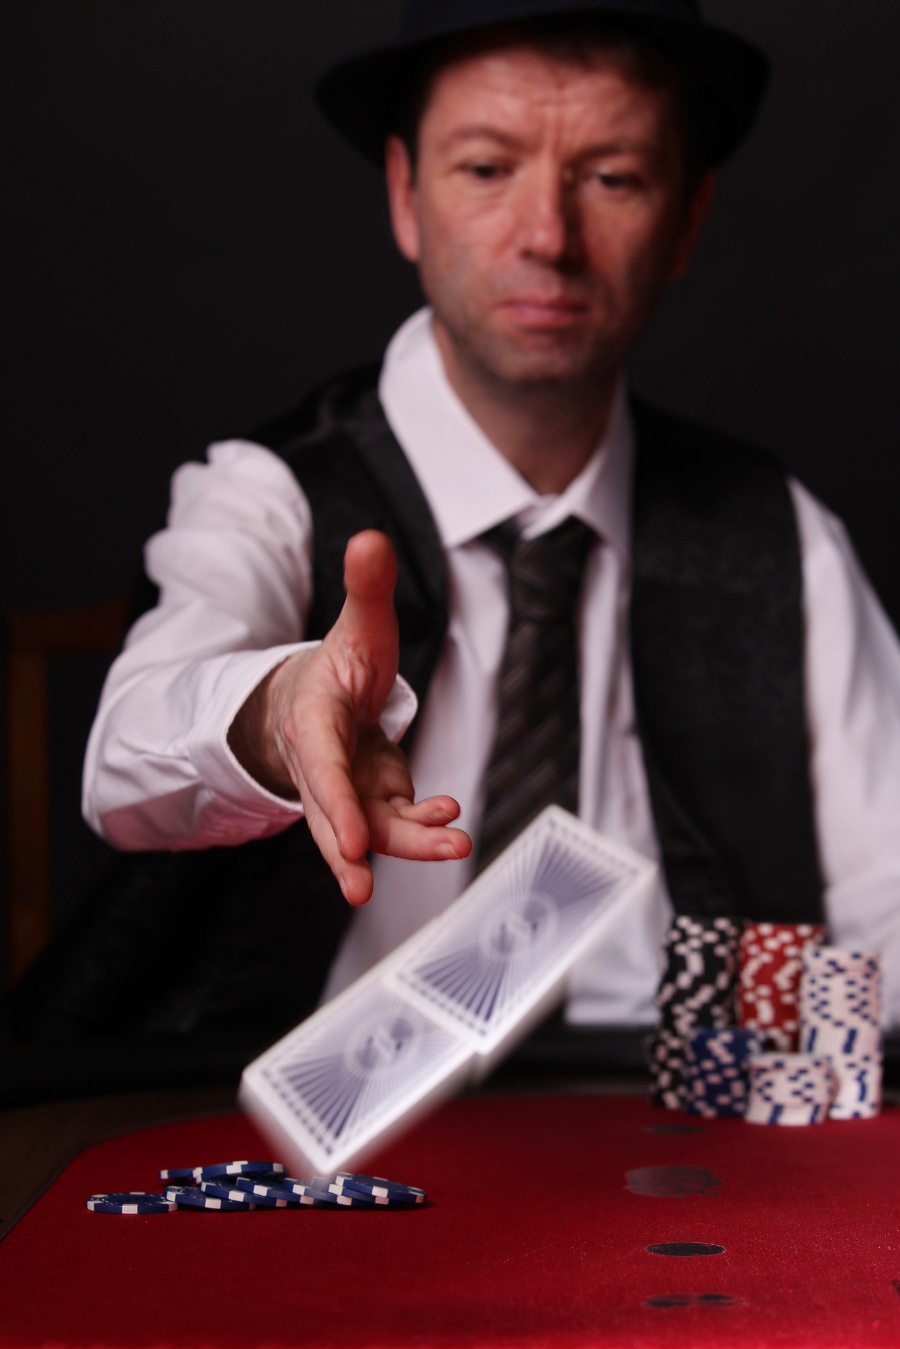 A lucky hand? / Photography by 2nd Curtain Photography, Model Ben.M, Post processing by 2nd Curtain Photography, Stylist 2nd Curtain Photography, Taken at 2nd Curtain Photography / Uploaded 7th August 2019 @ 01:39 PM